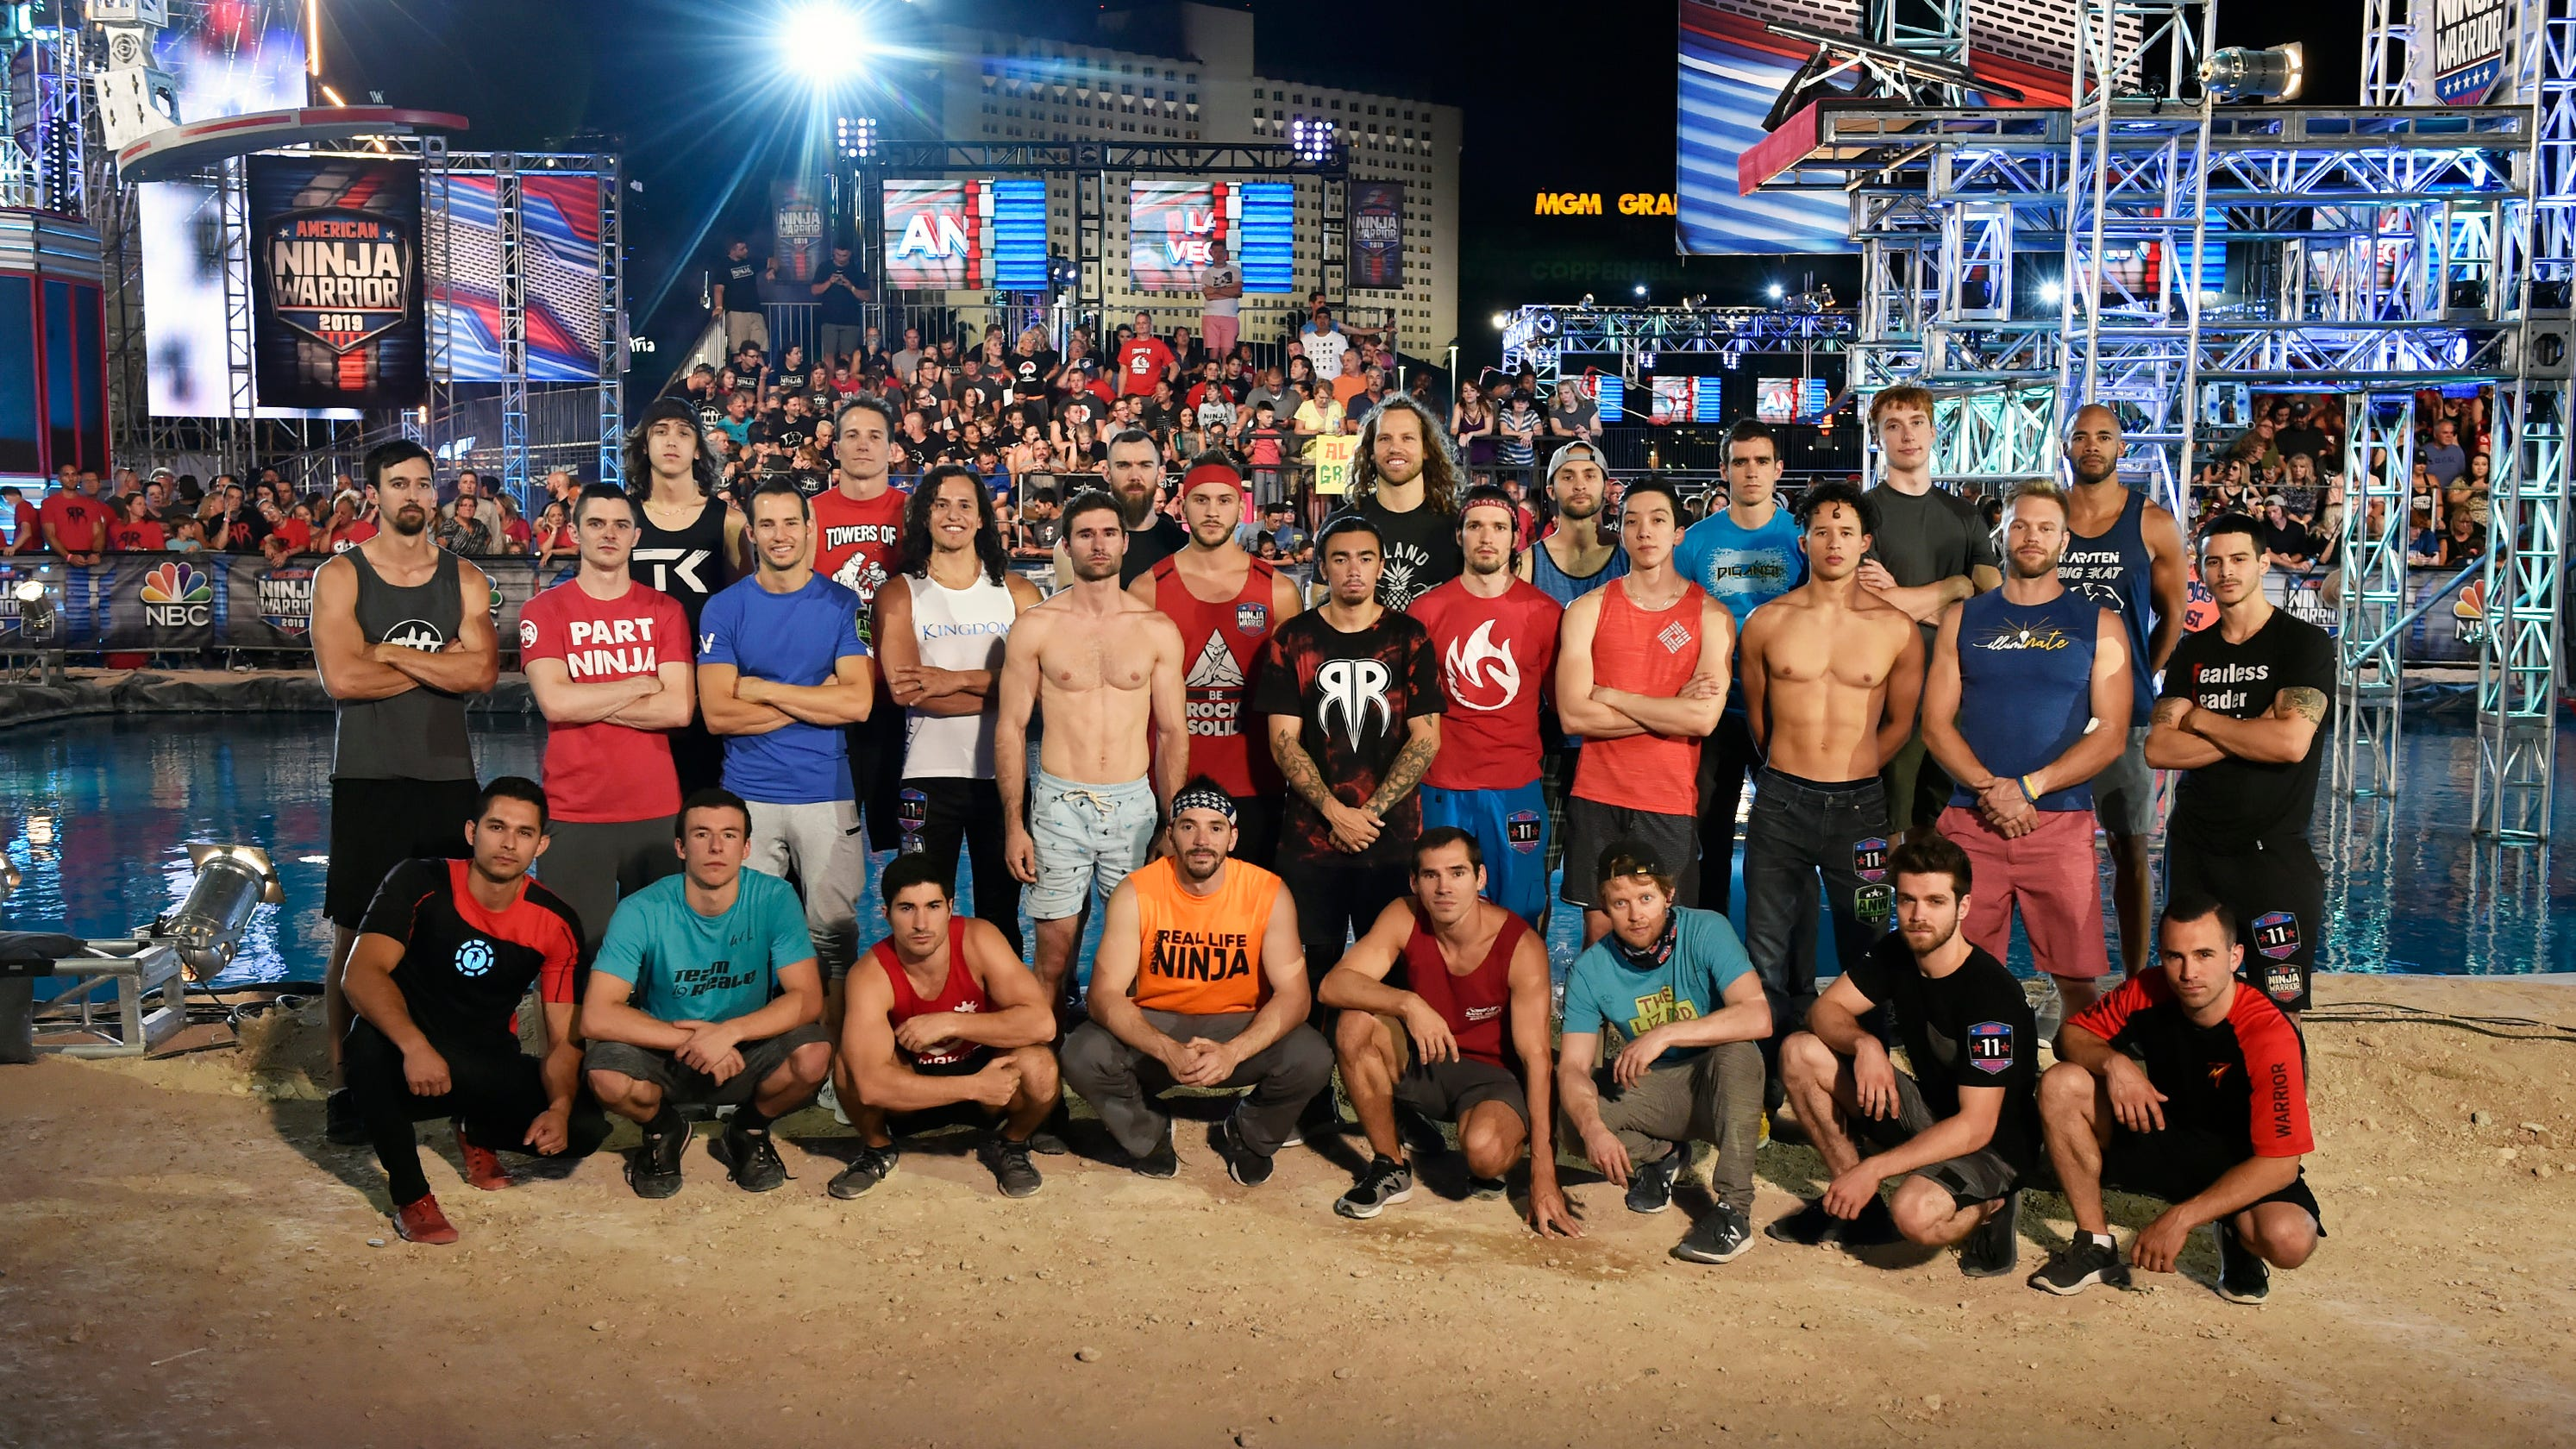 'Ninja Warrior' champ isn't satisfied: 'I want to win two times, back to back'